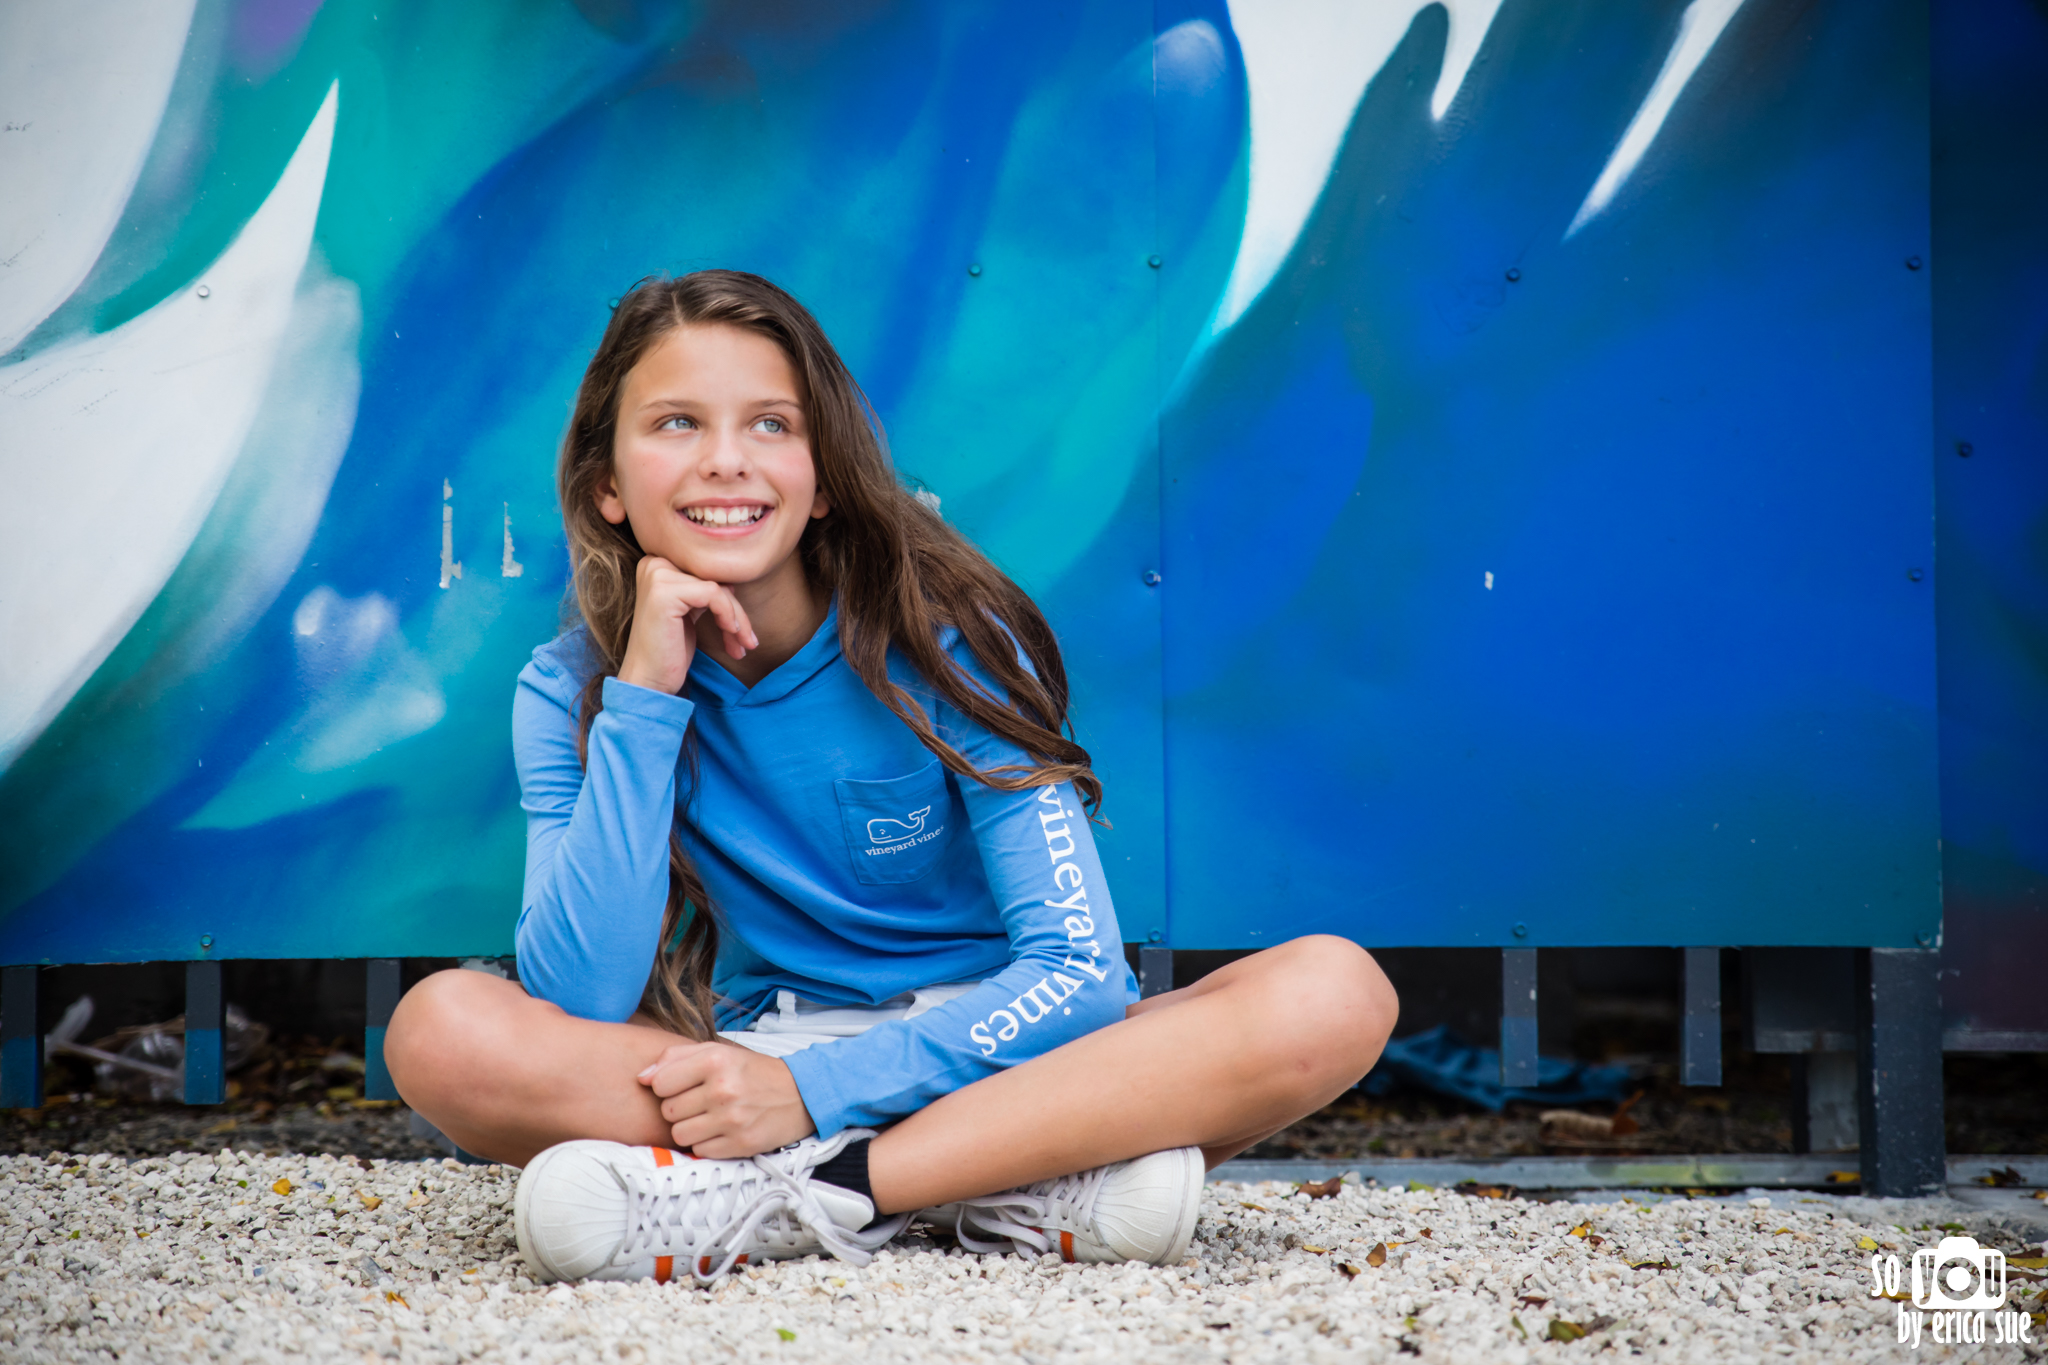 so-you-by-erica-sue-wynwood-walls-miami-photography-mitzvah-pre-shoot-5444.jpg